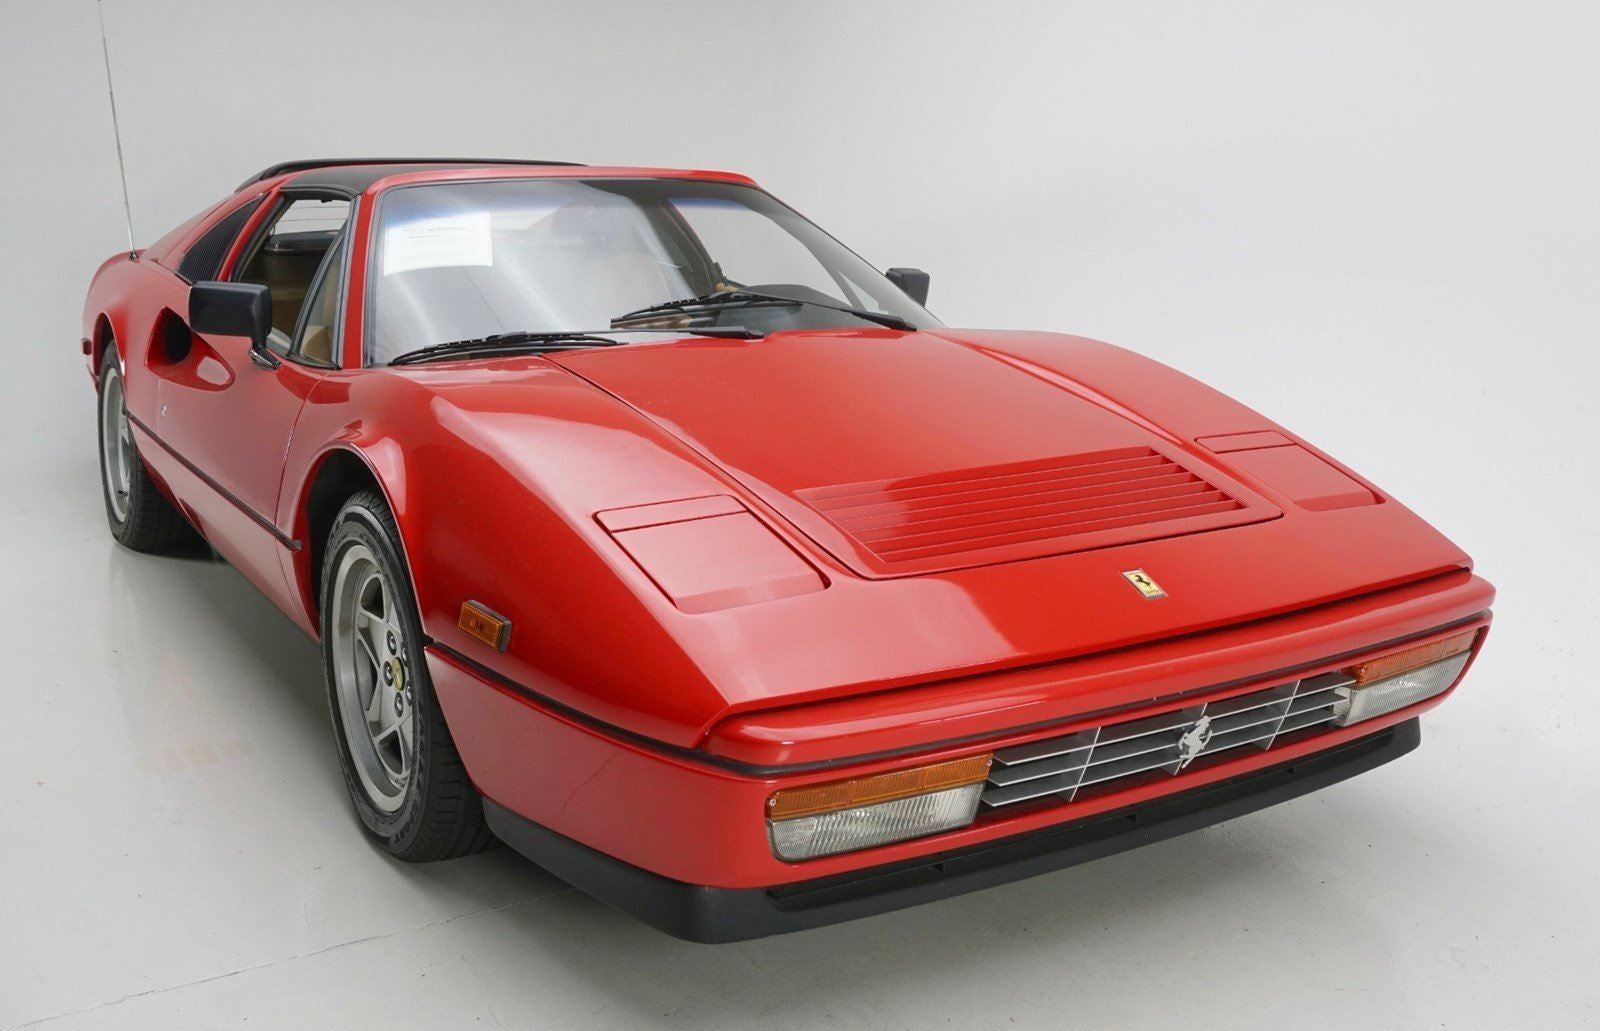 1988 ferrari 328gts charlotte nc cornelius davidson huntersville north carolina zffxa20a4j0075061. Black Bedroom Furniture Sets. Home Design Ideas